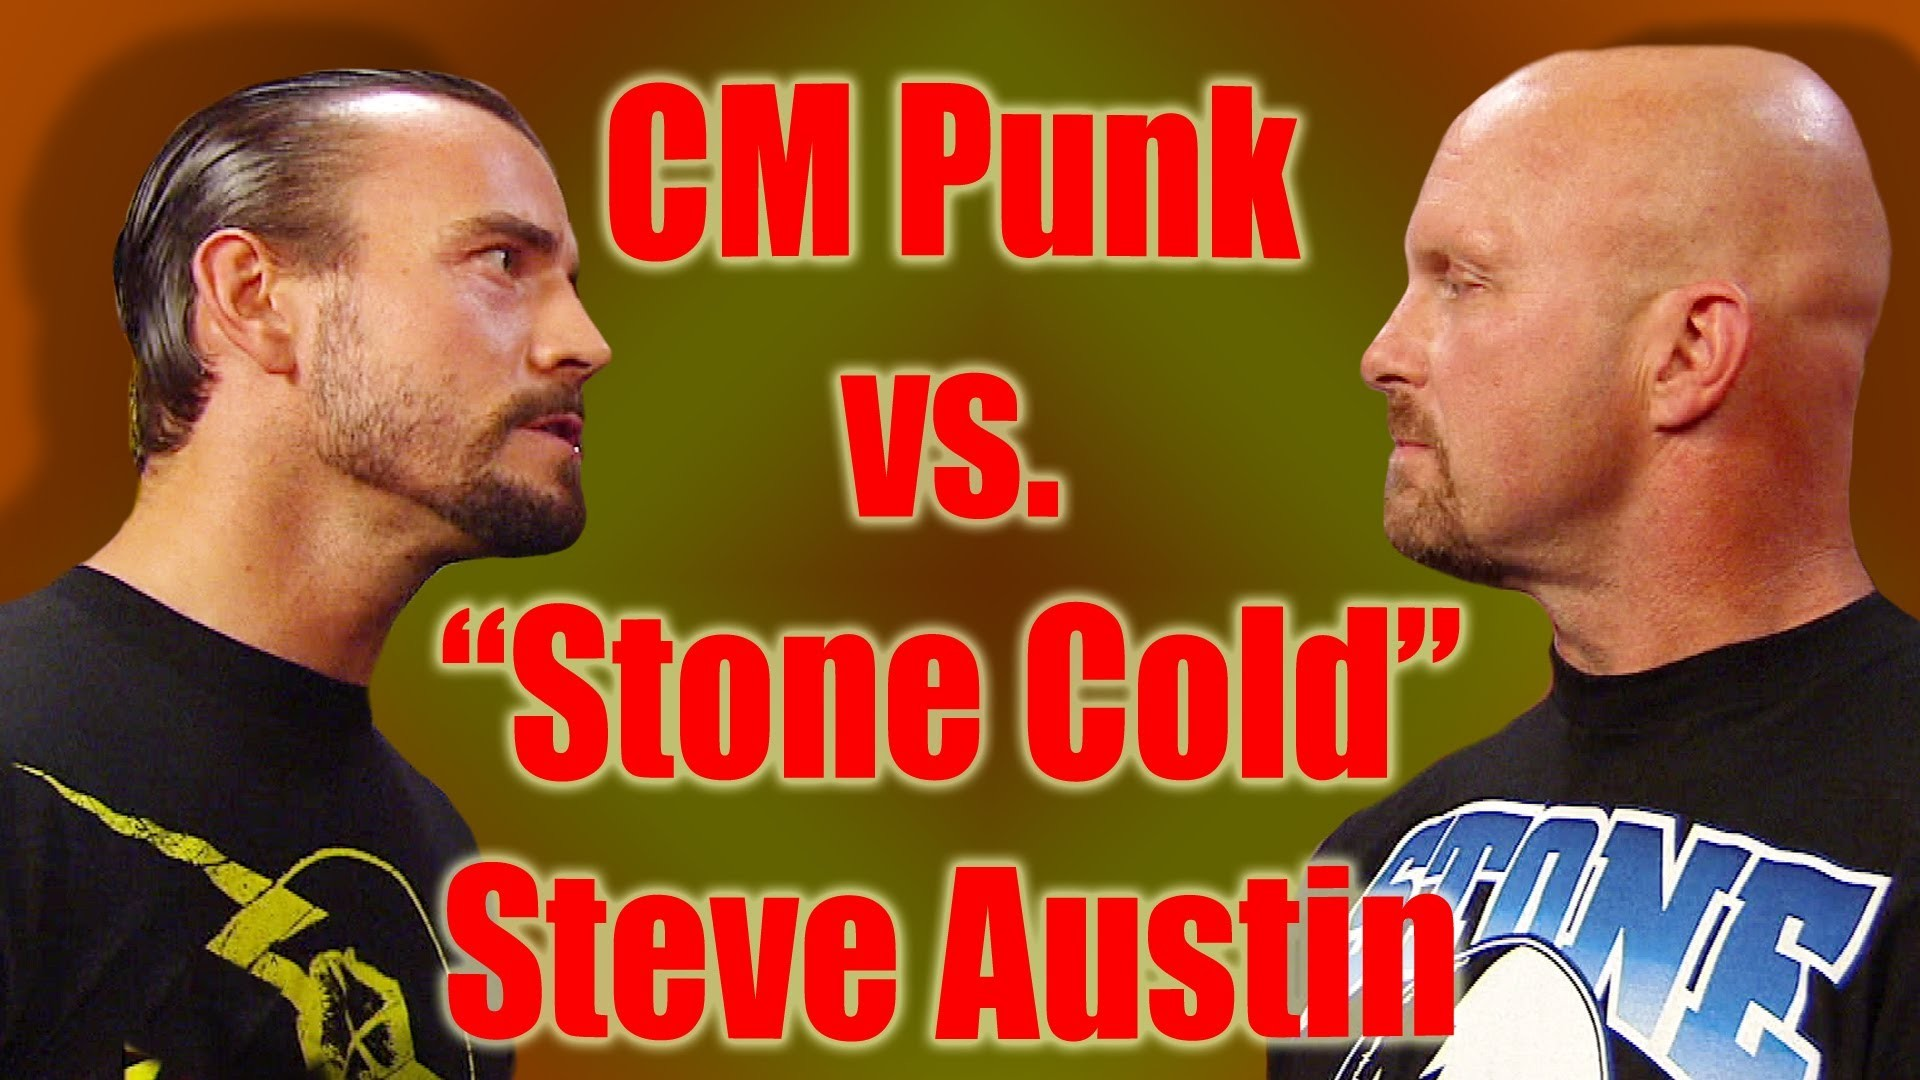 … stone cold hd wallpaper. Download image